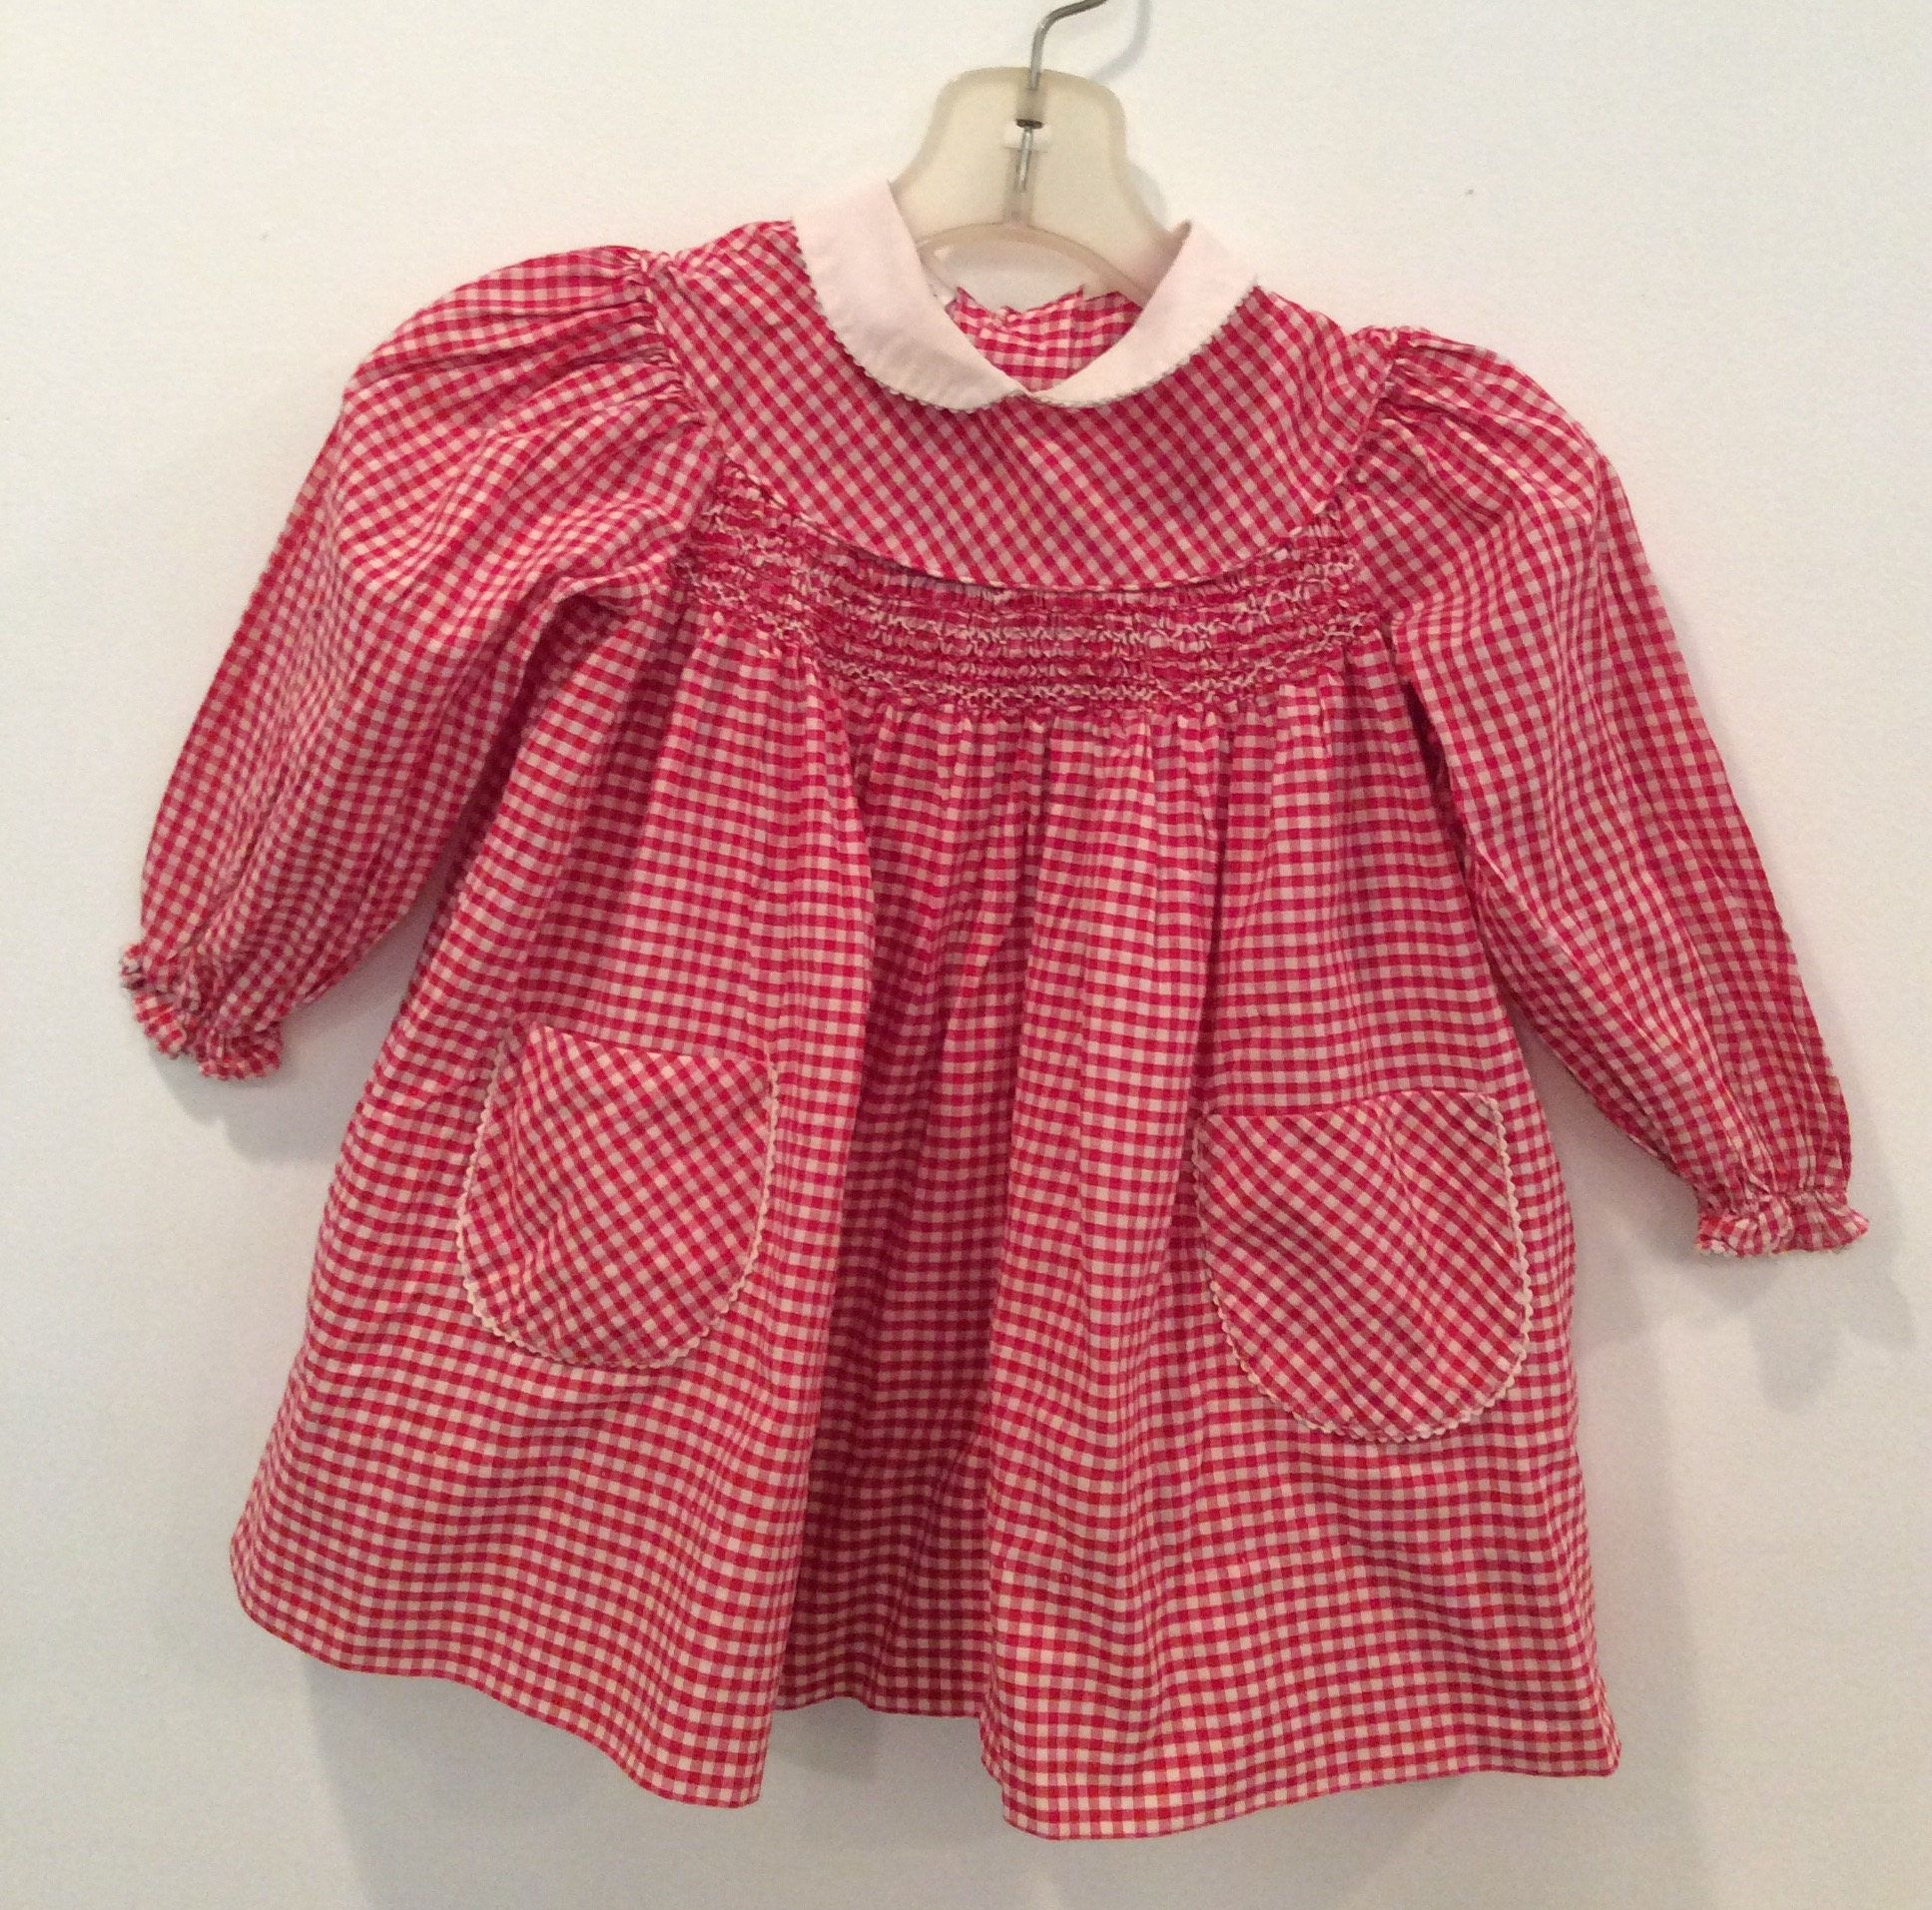 Polly flinders red and white check smocked dress vintage size t